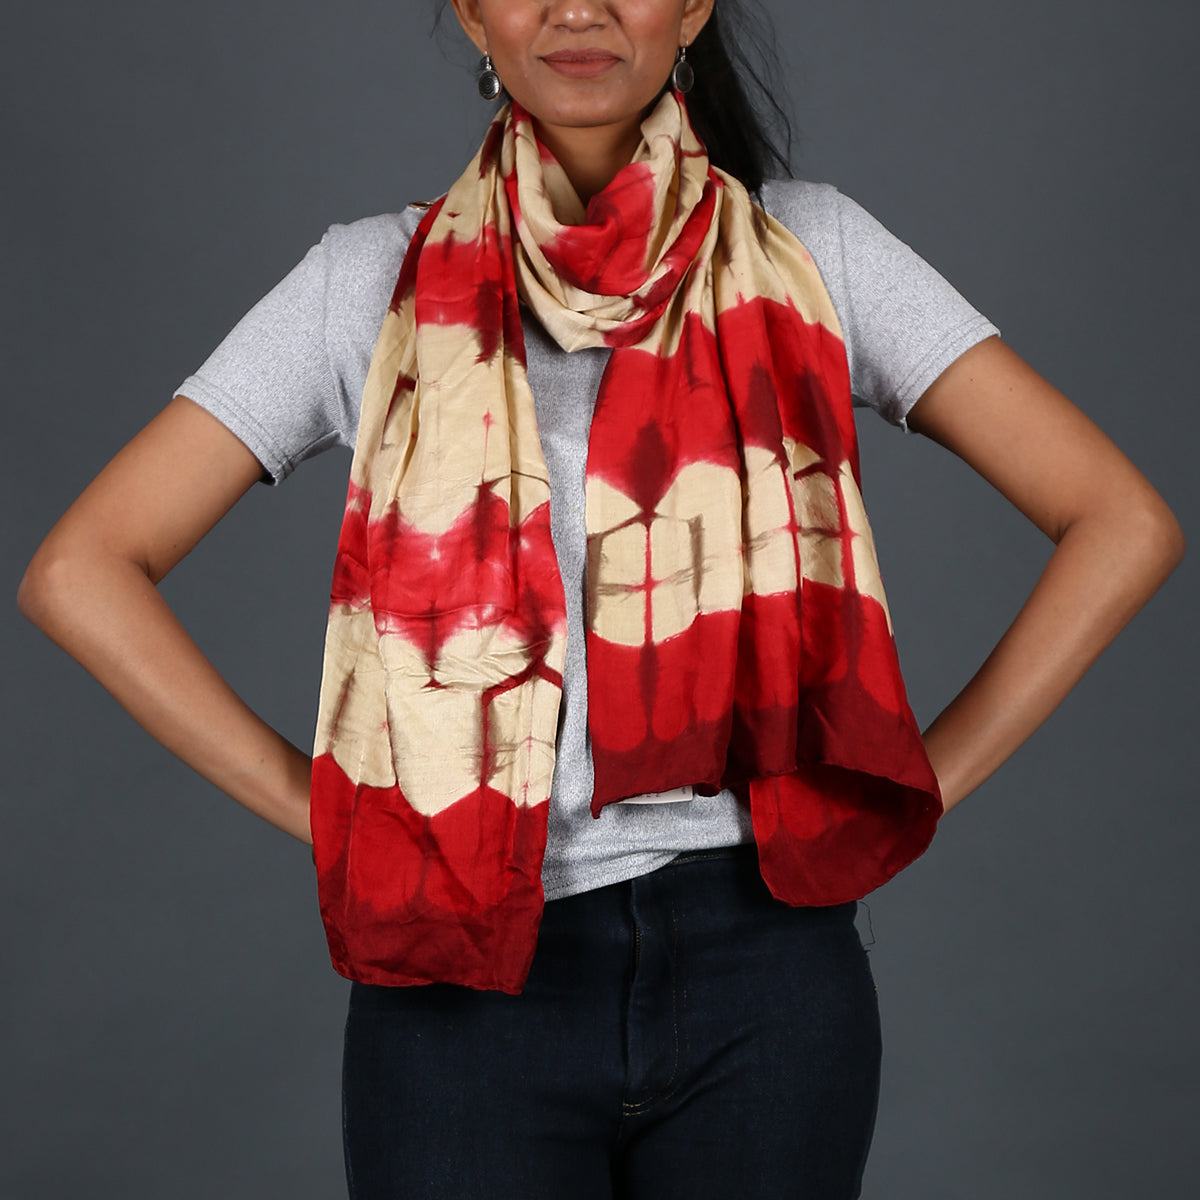 Kutch Tie & Dye Stole in Gajji Silk with Clamp Dye 13